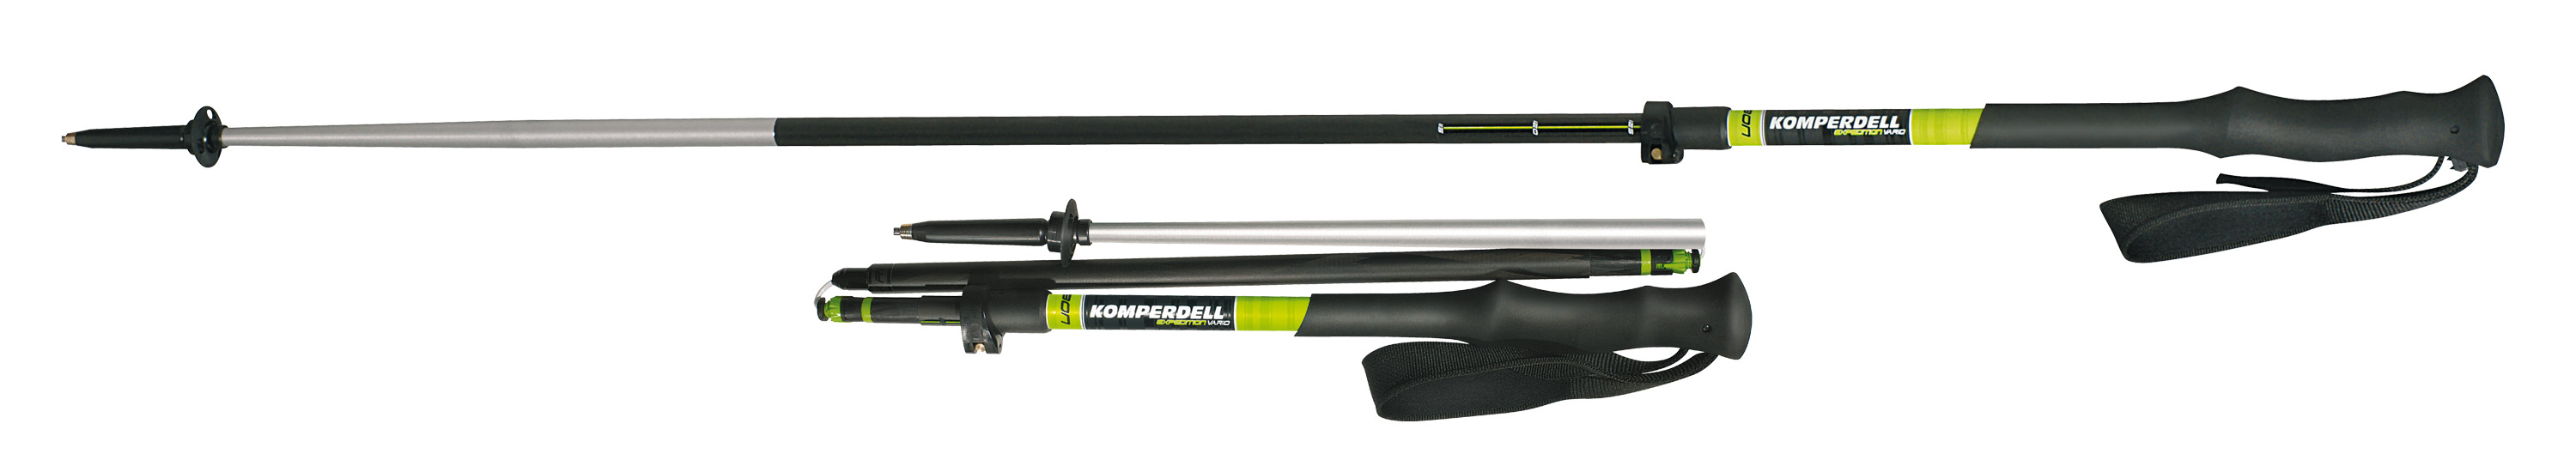 komperdell_carbon